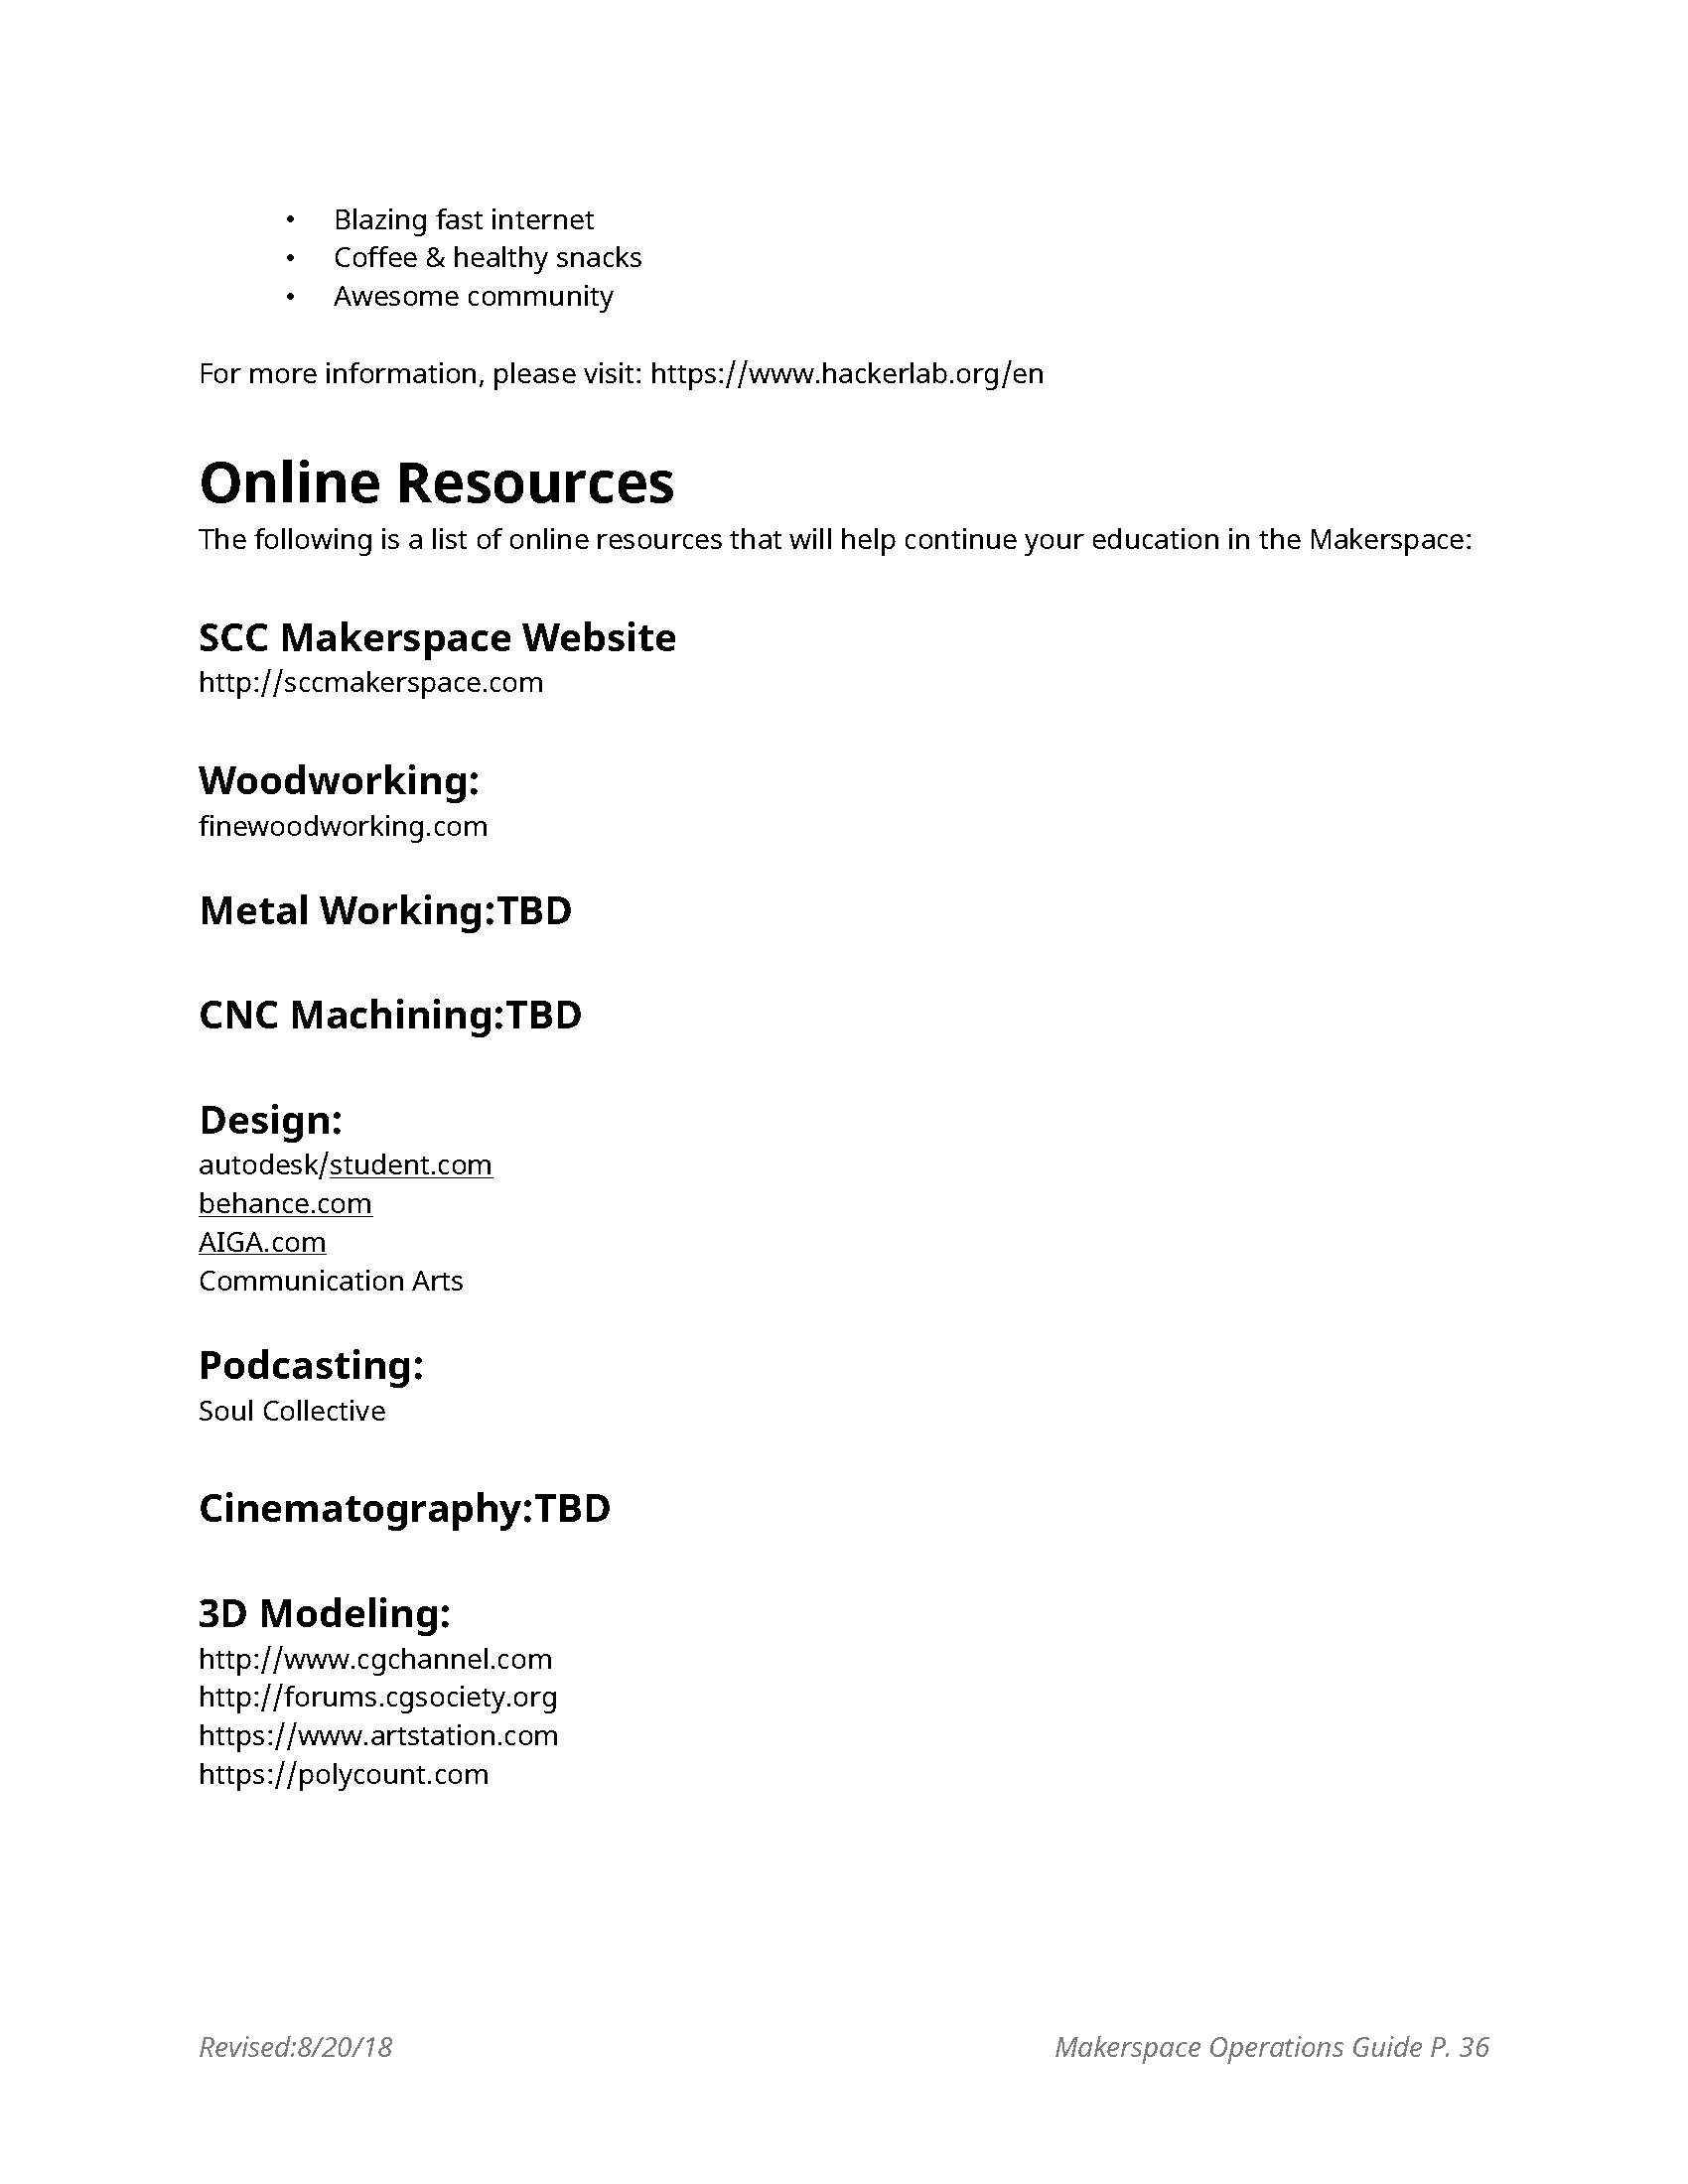 ms_ops_manual_8-20_Page_36.png